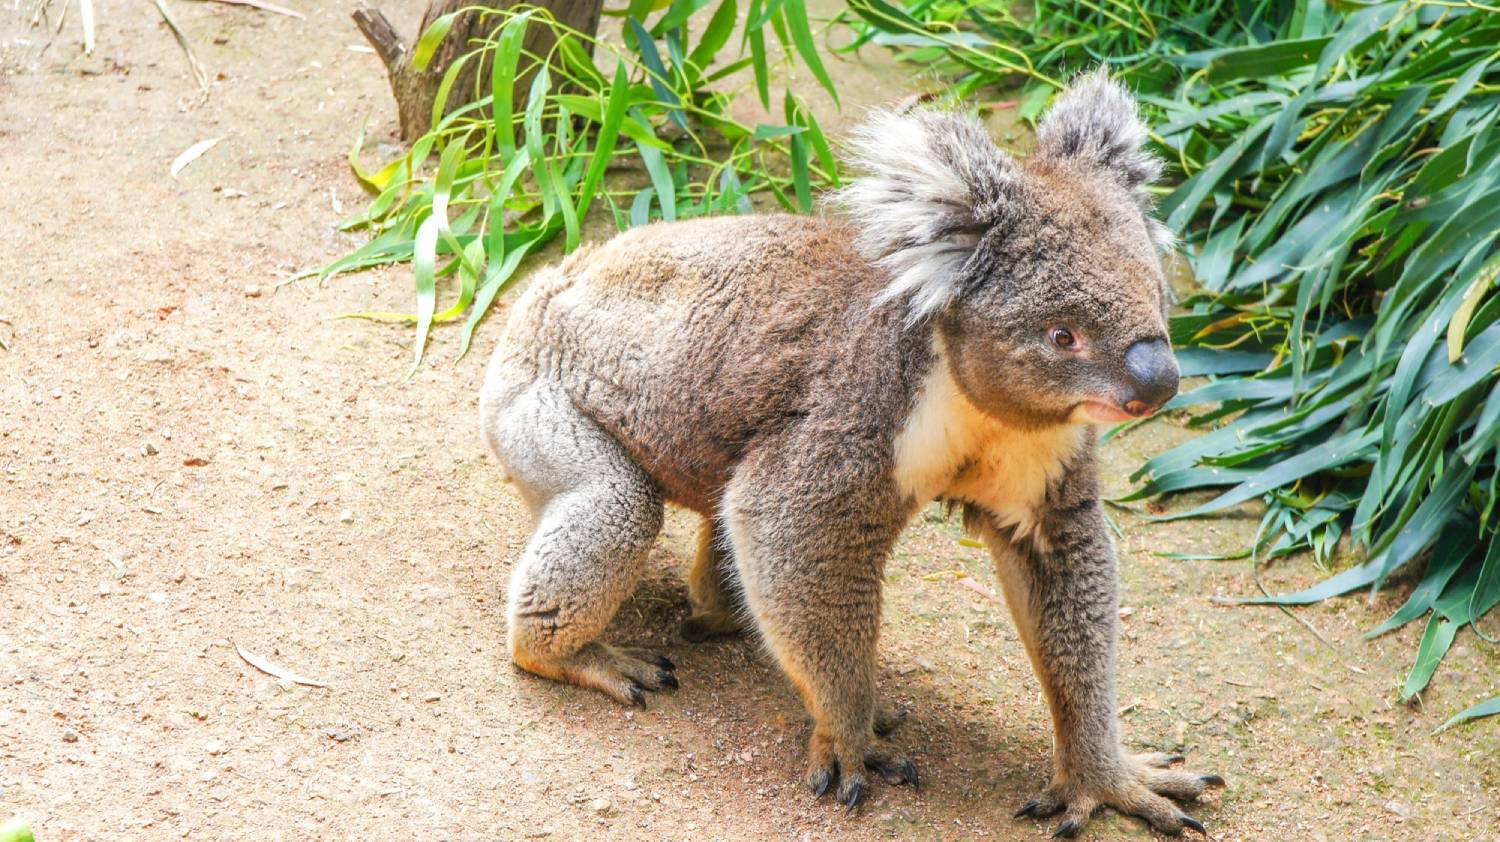 Healesville Sanctuary - Things To Do In Melbourne